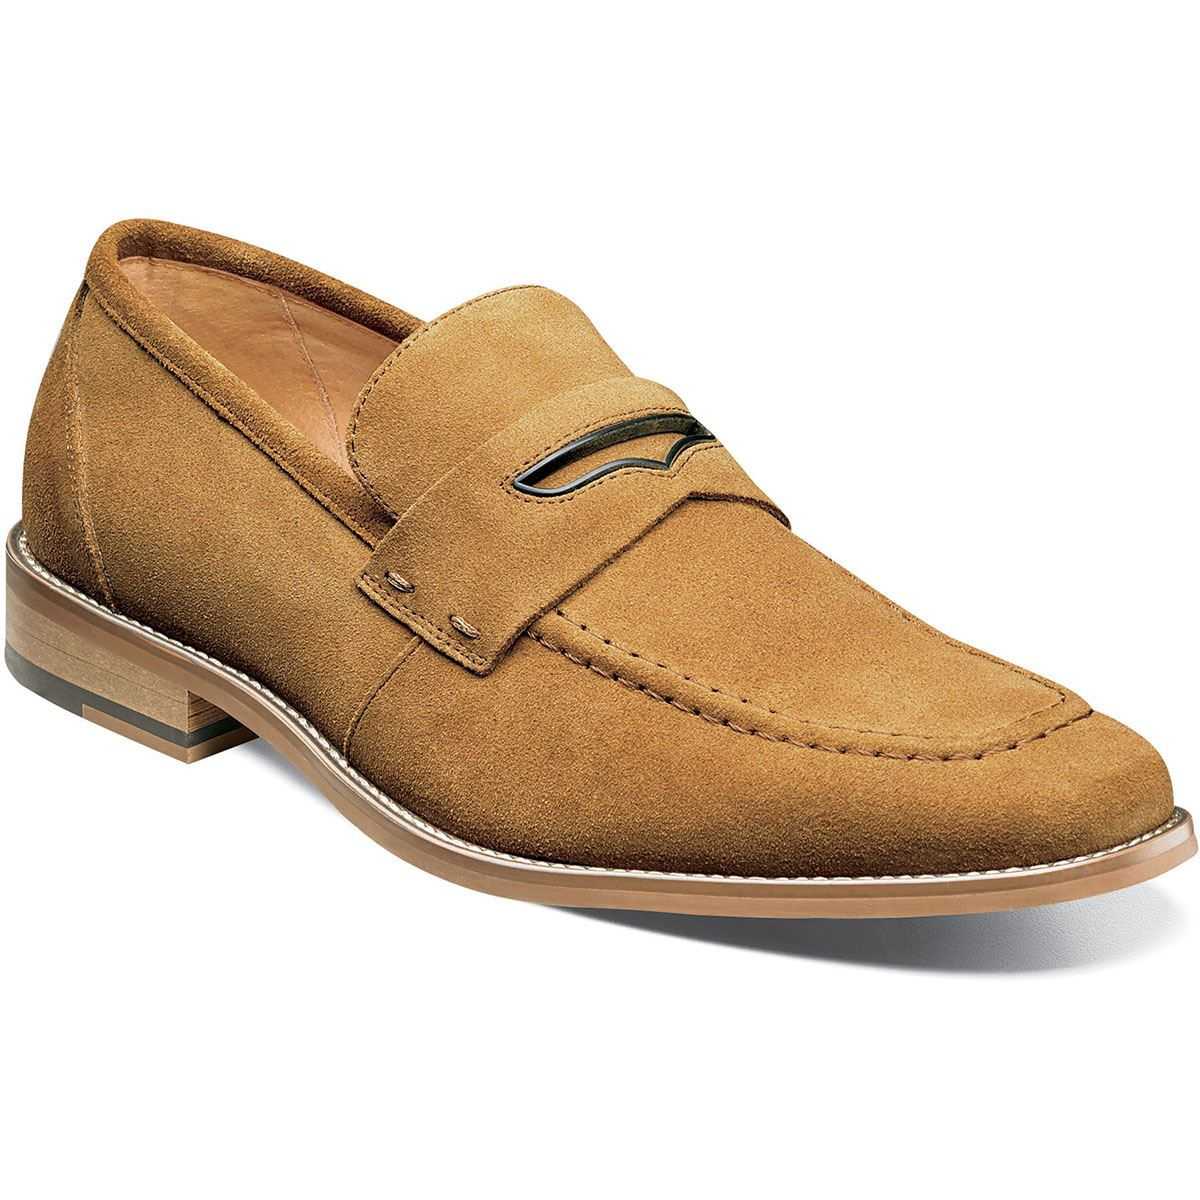 Stacy Adams Colfax Uomo Colfax Adams Moc Toe Penny Slip On (25205) bf3e37